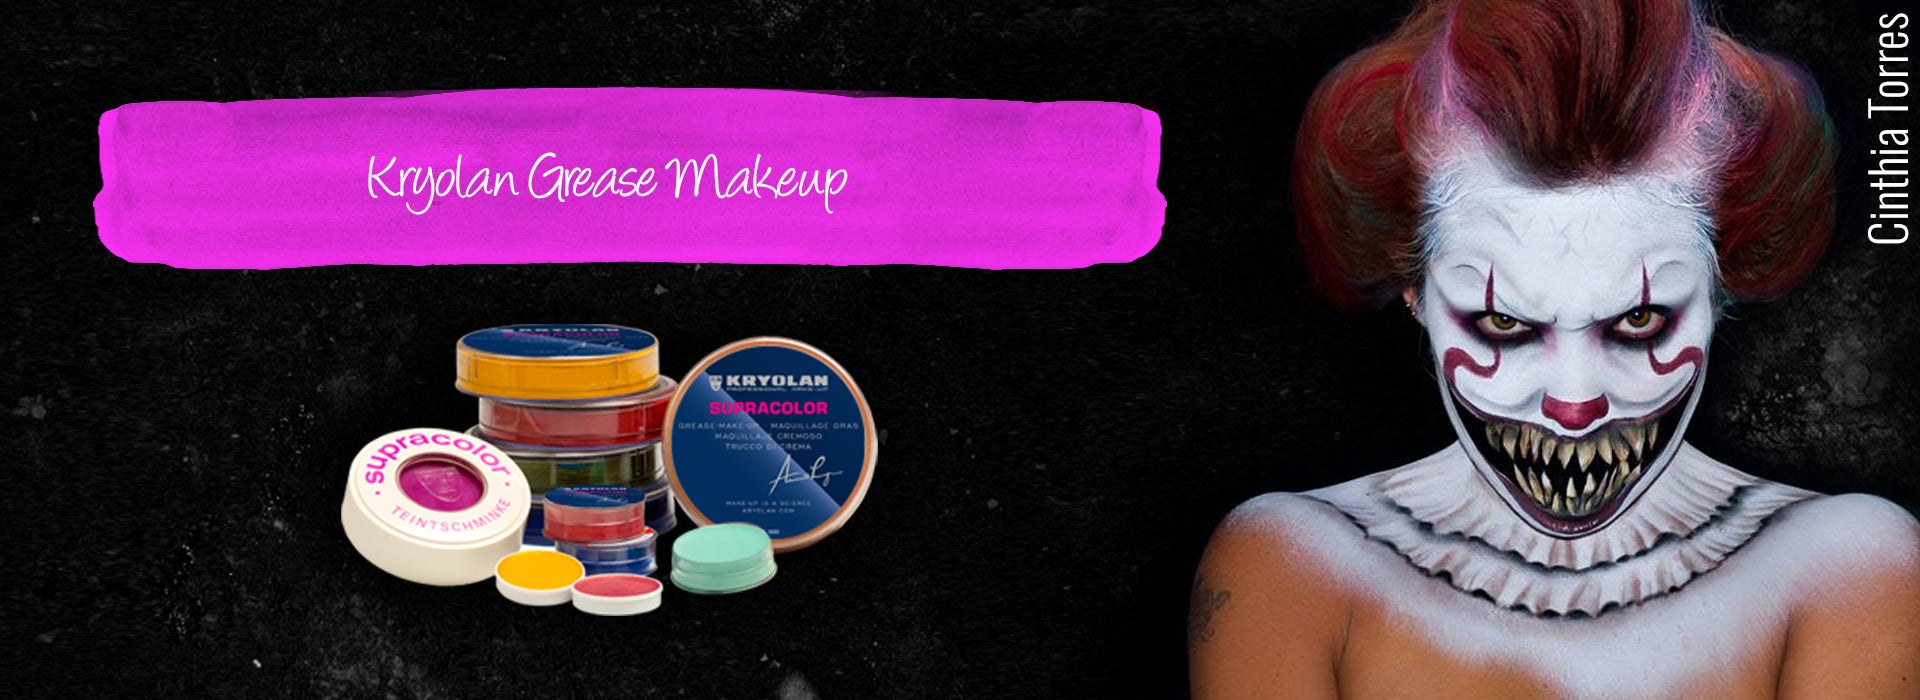 Kryolan Grease Makeup